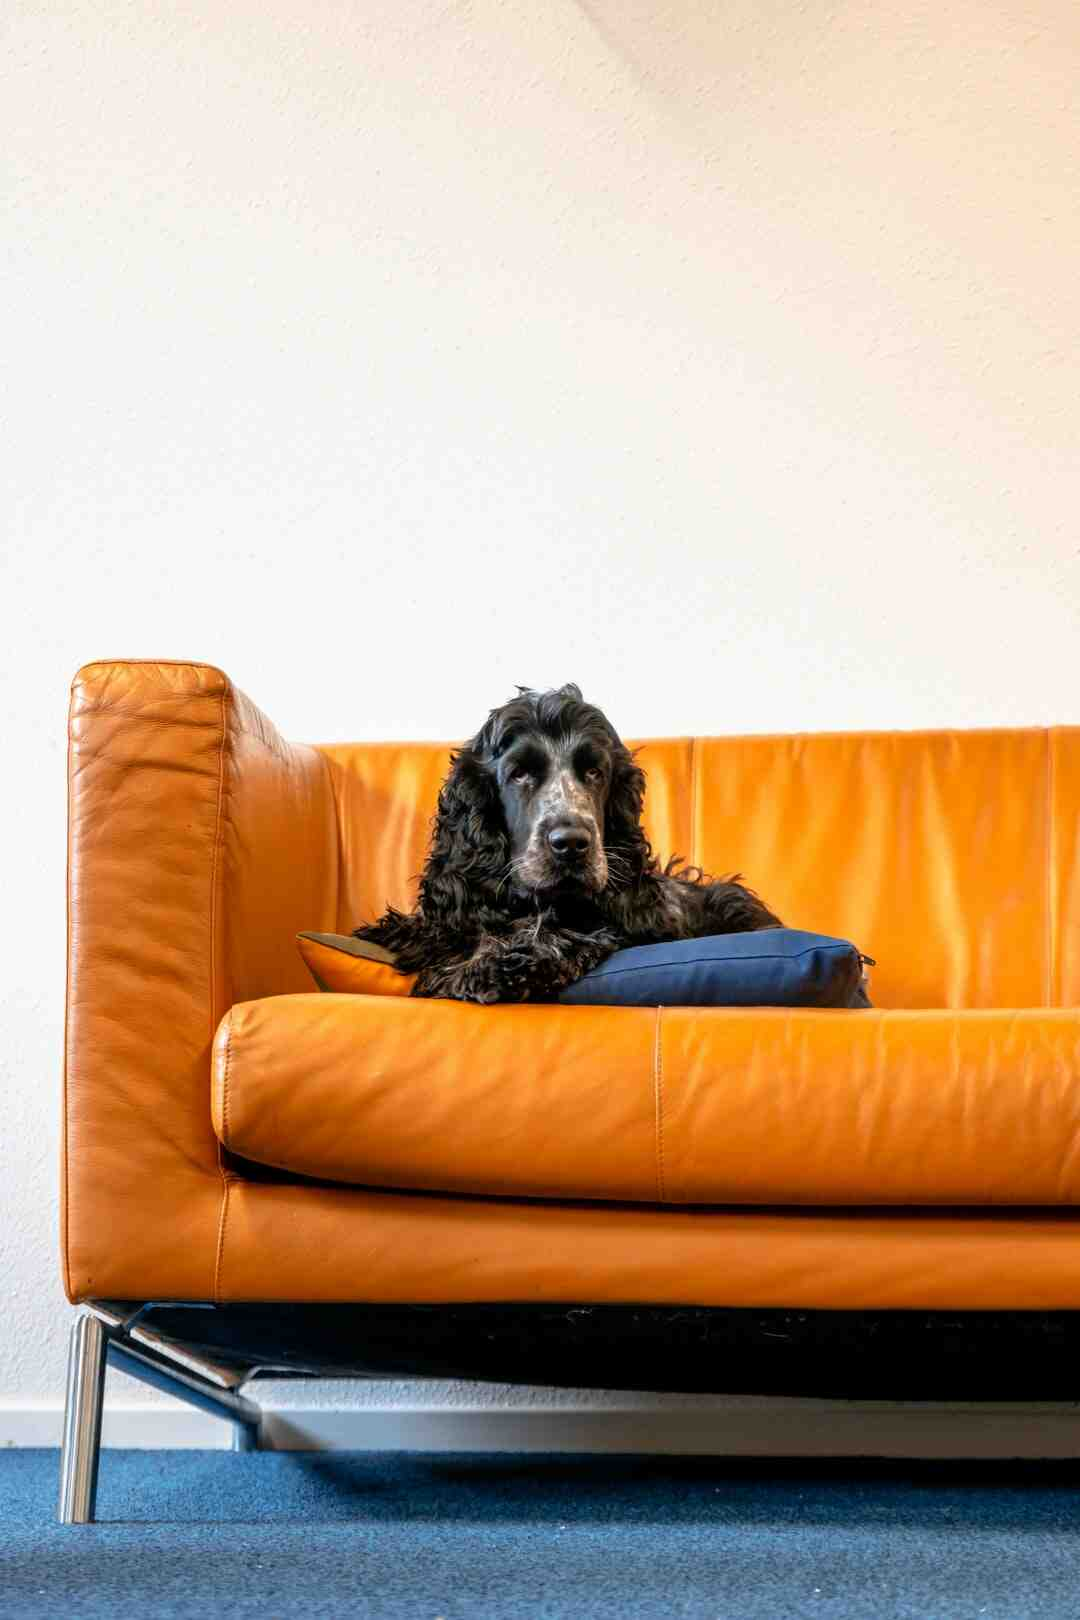 Does tin foil keep dogs off the couch?